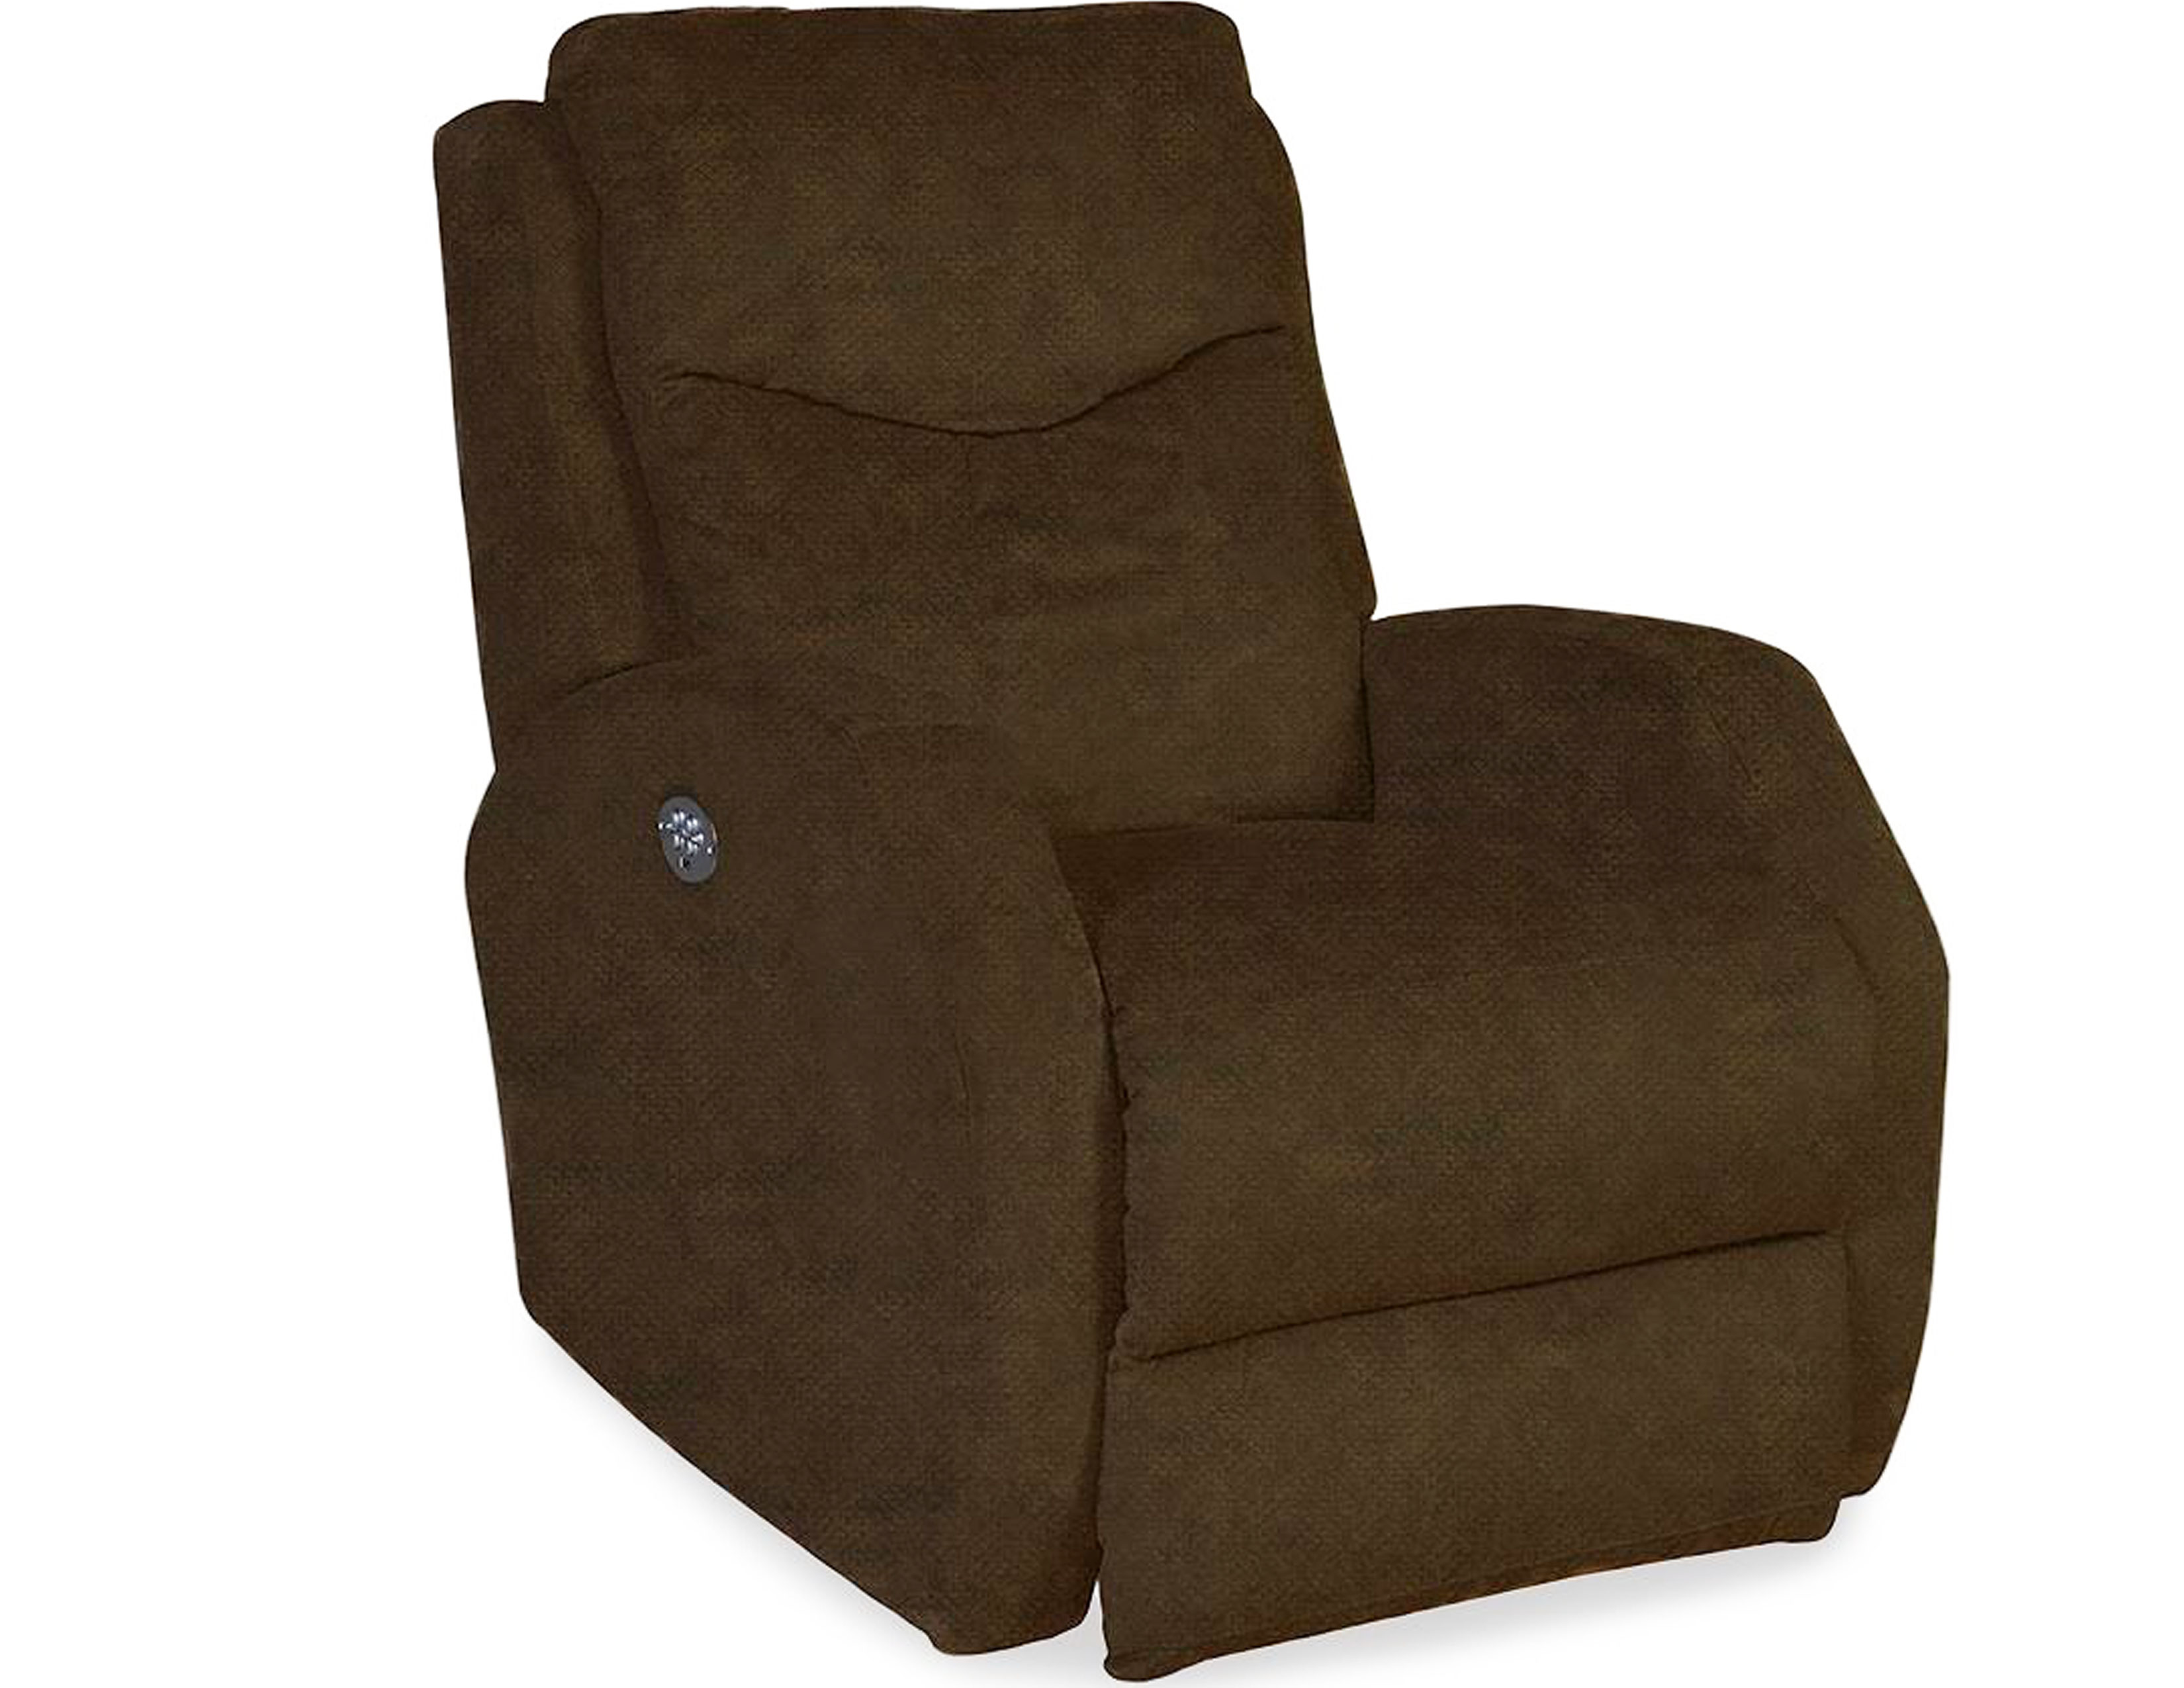 Tip Top 94317 Layflat Lift Recliner 140 Sofas And Sectionals